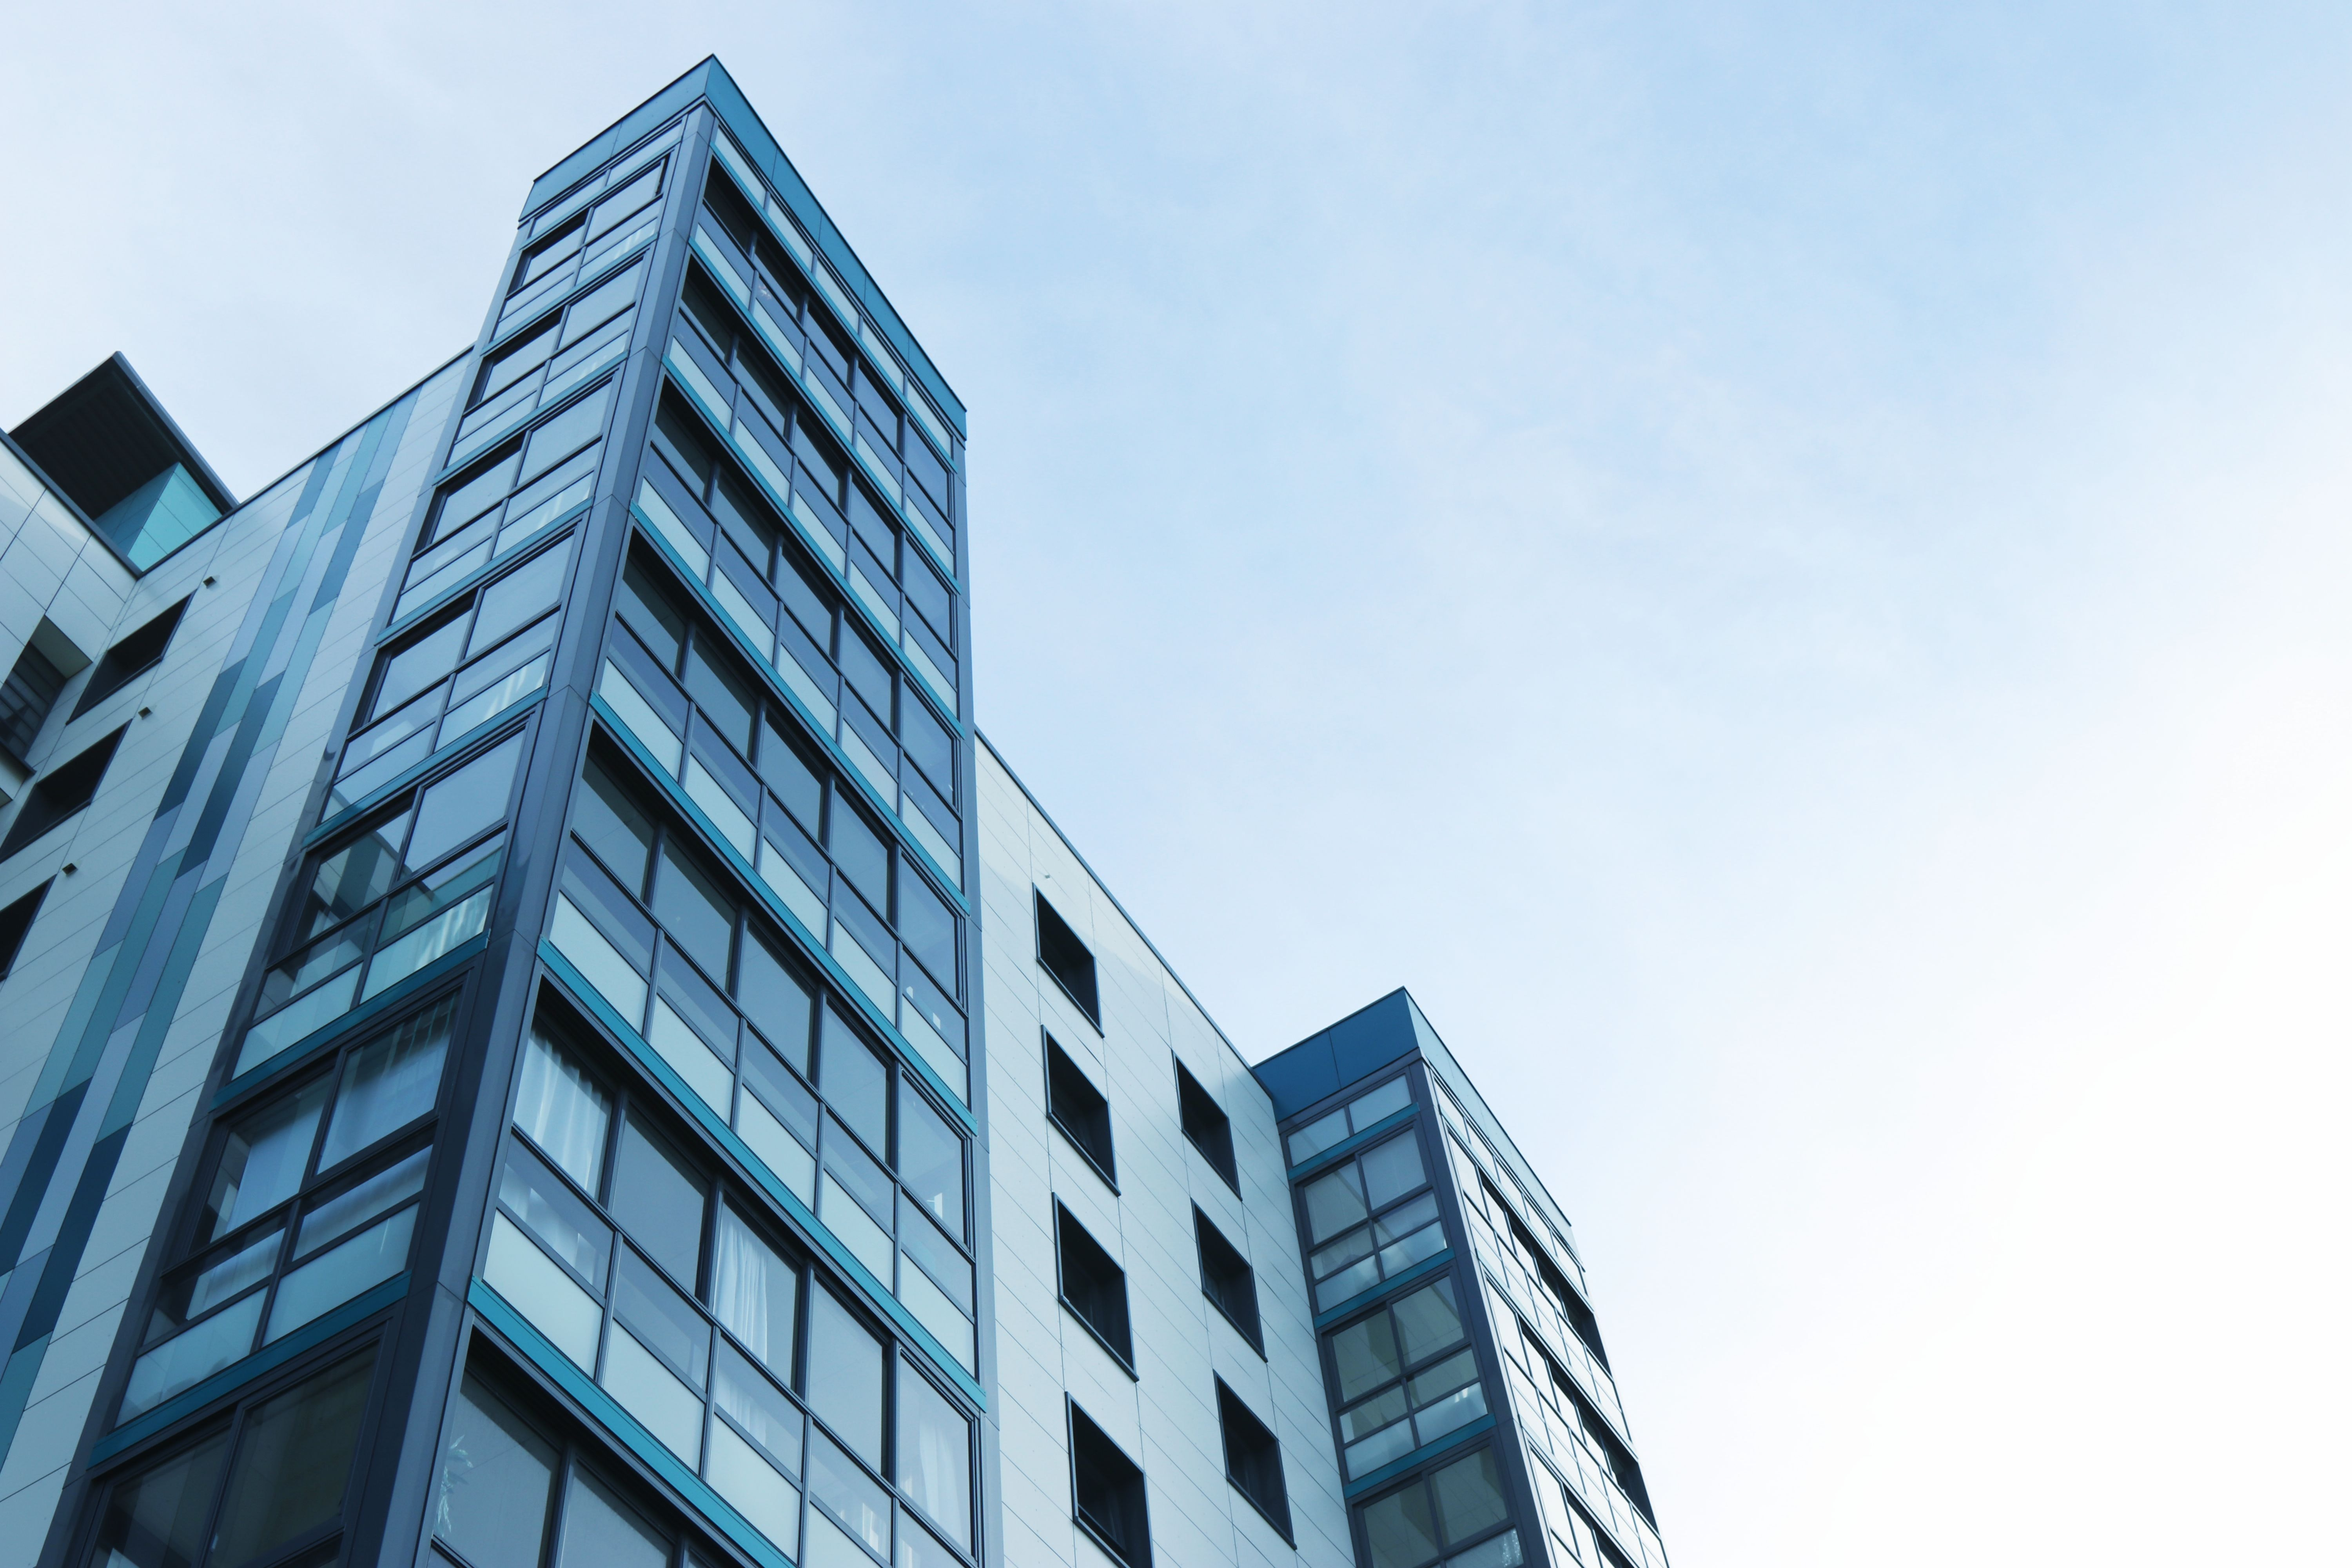 The Current Tenant Base Reveals the Real Value of the Property You're Investing In